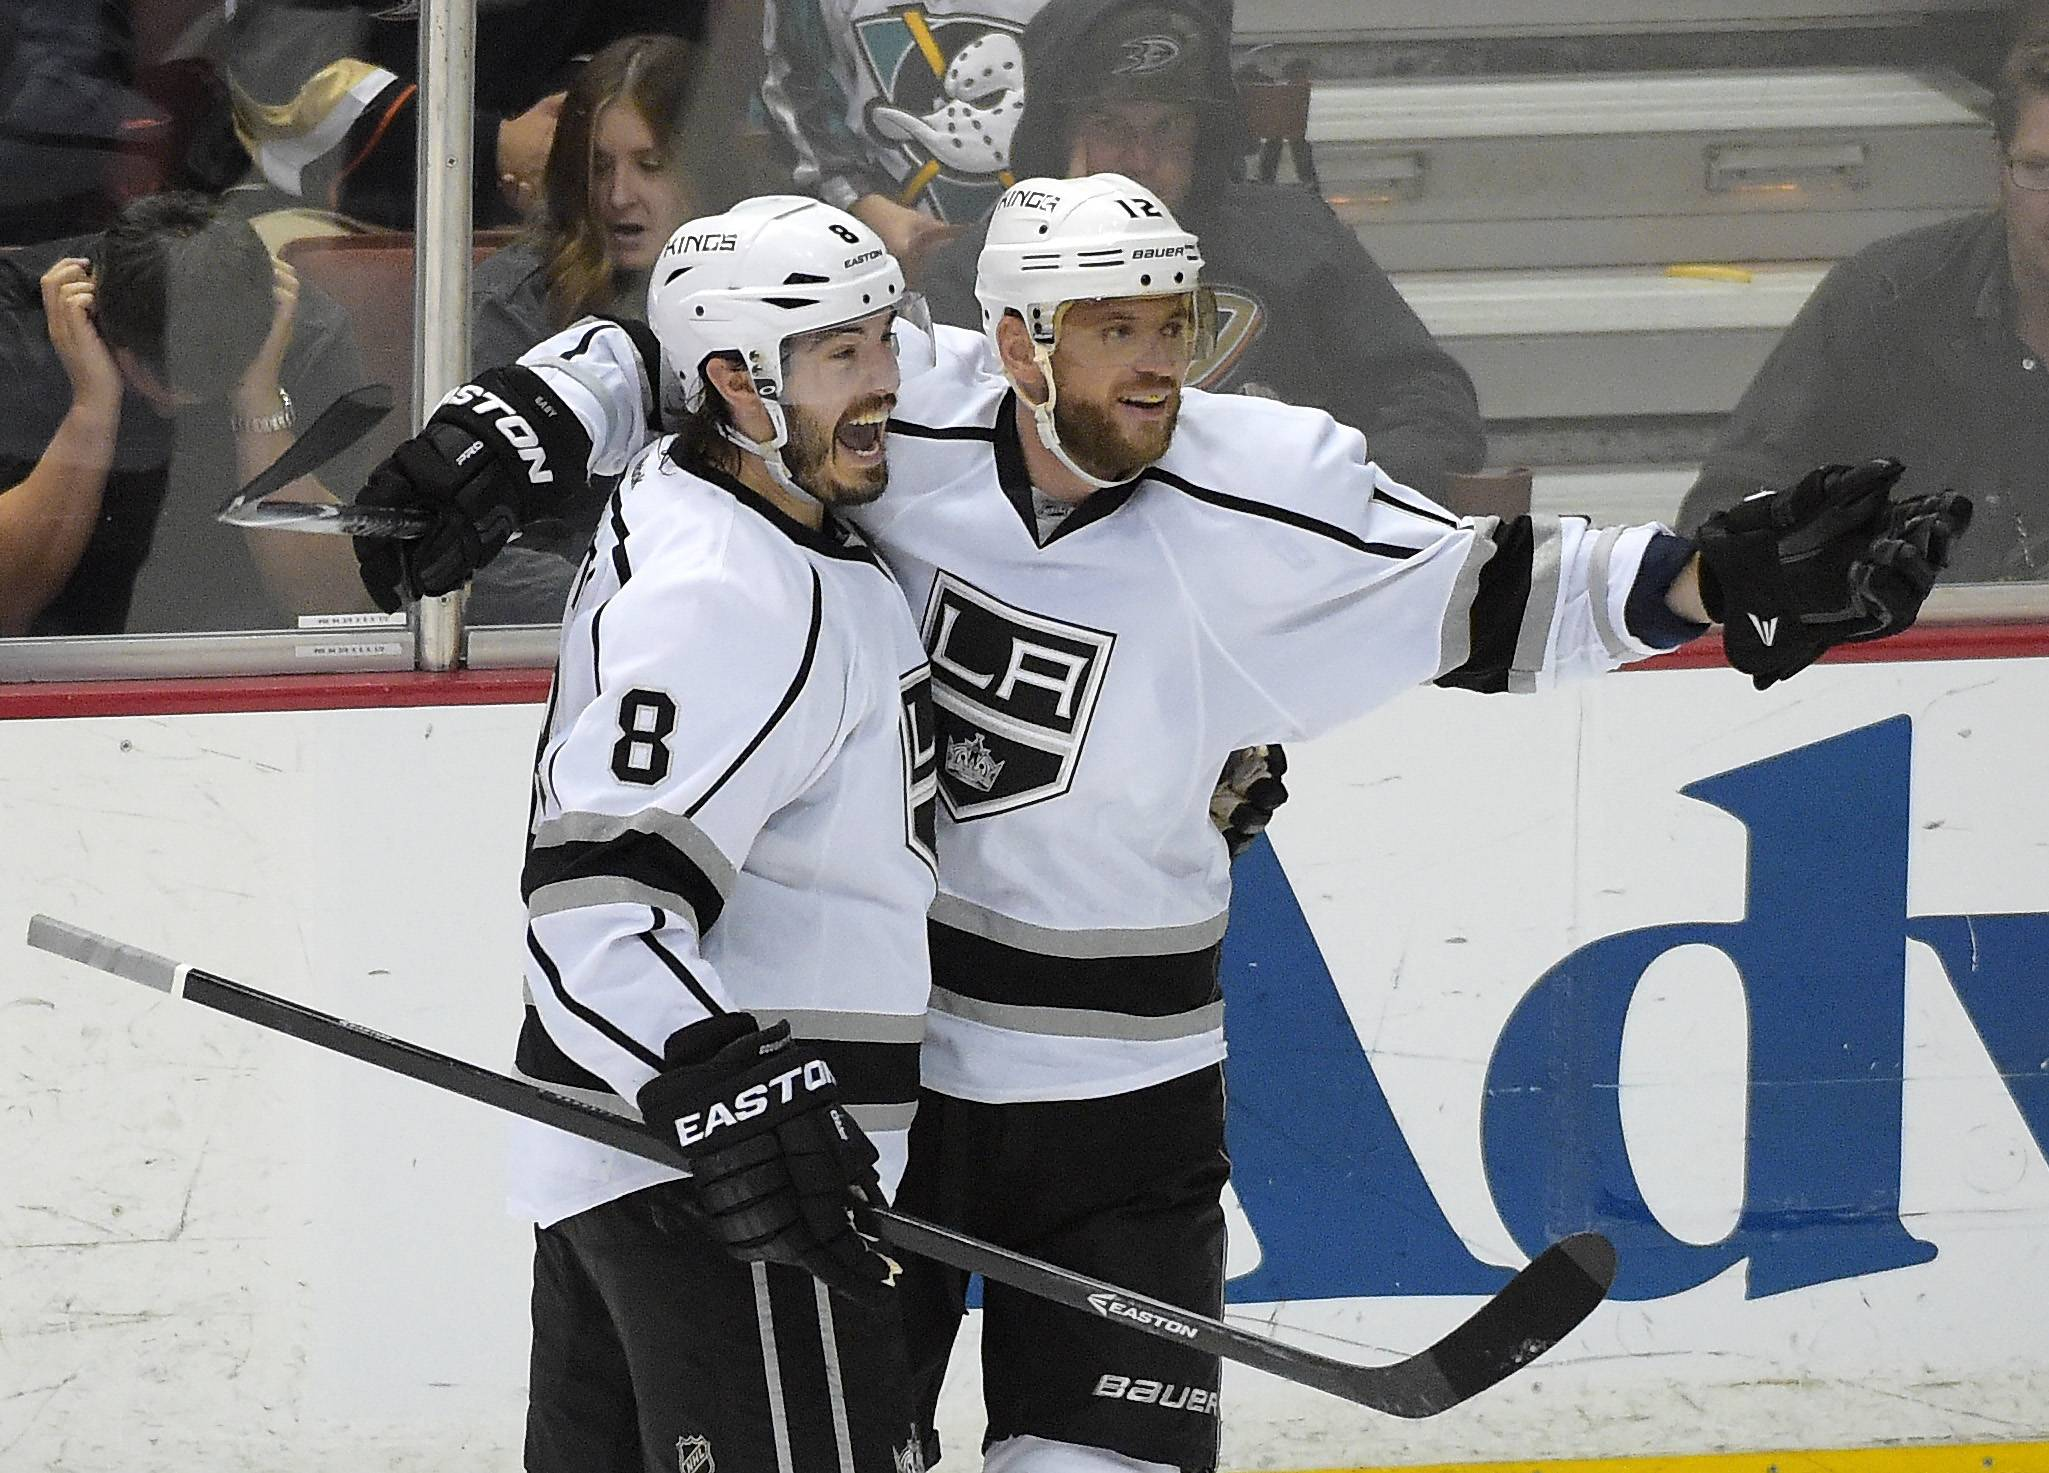 Only 36 hours after dispatching the Anaheim Ducks, Los Angeles Kings right wing Marian Gaborik, right, and standout defenseman Drew Doughty will face the Blackhawks in Game 1 of the Western Conference finals.